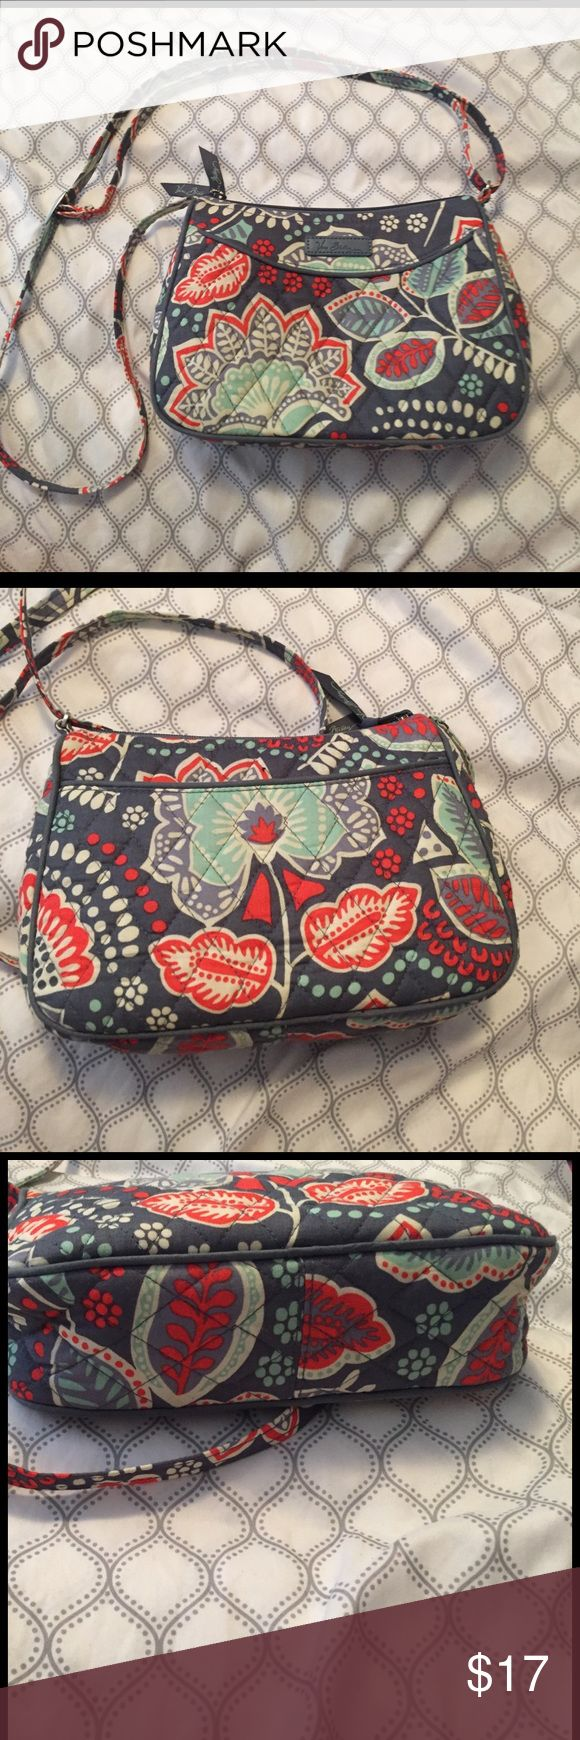 Vera Bradley nomadic floral purse In great condition. Tried to use it but it was smaller than I expected. Strap can adjust to be more of a cross body or tighten even more Vera Bradley Bags Crossbody Bags